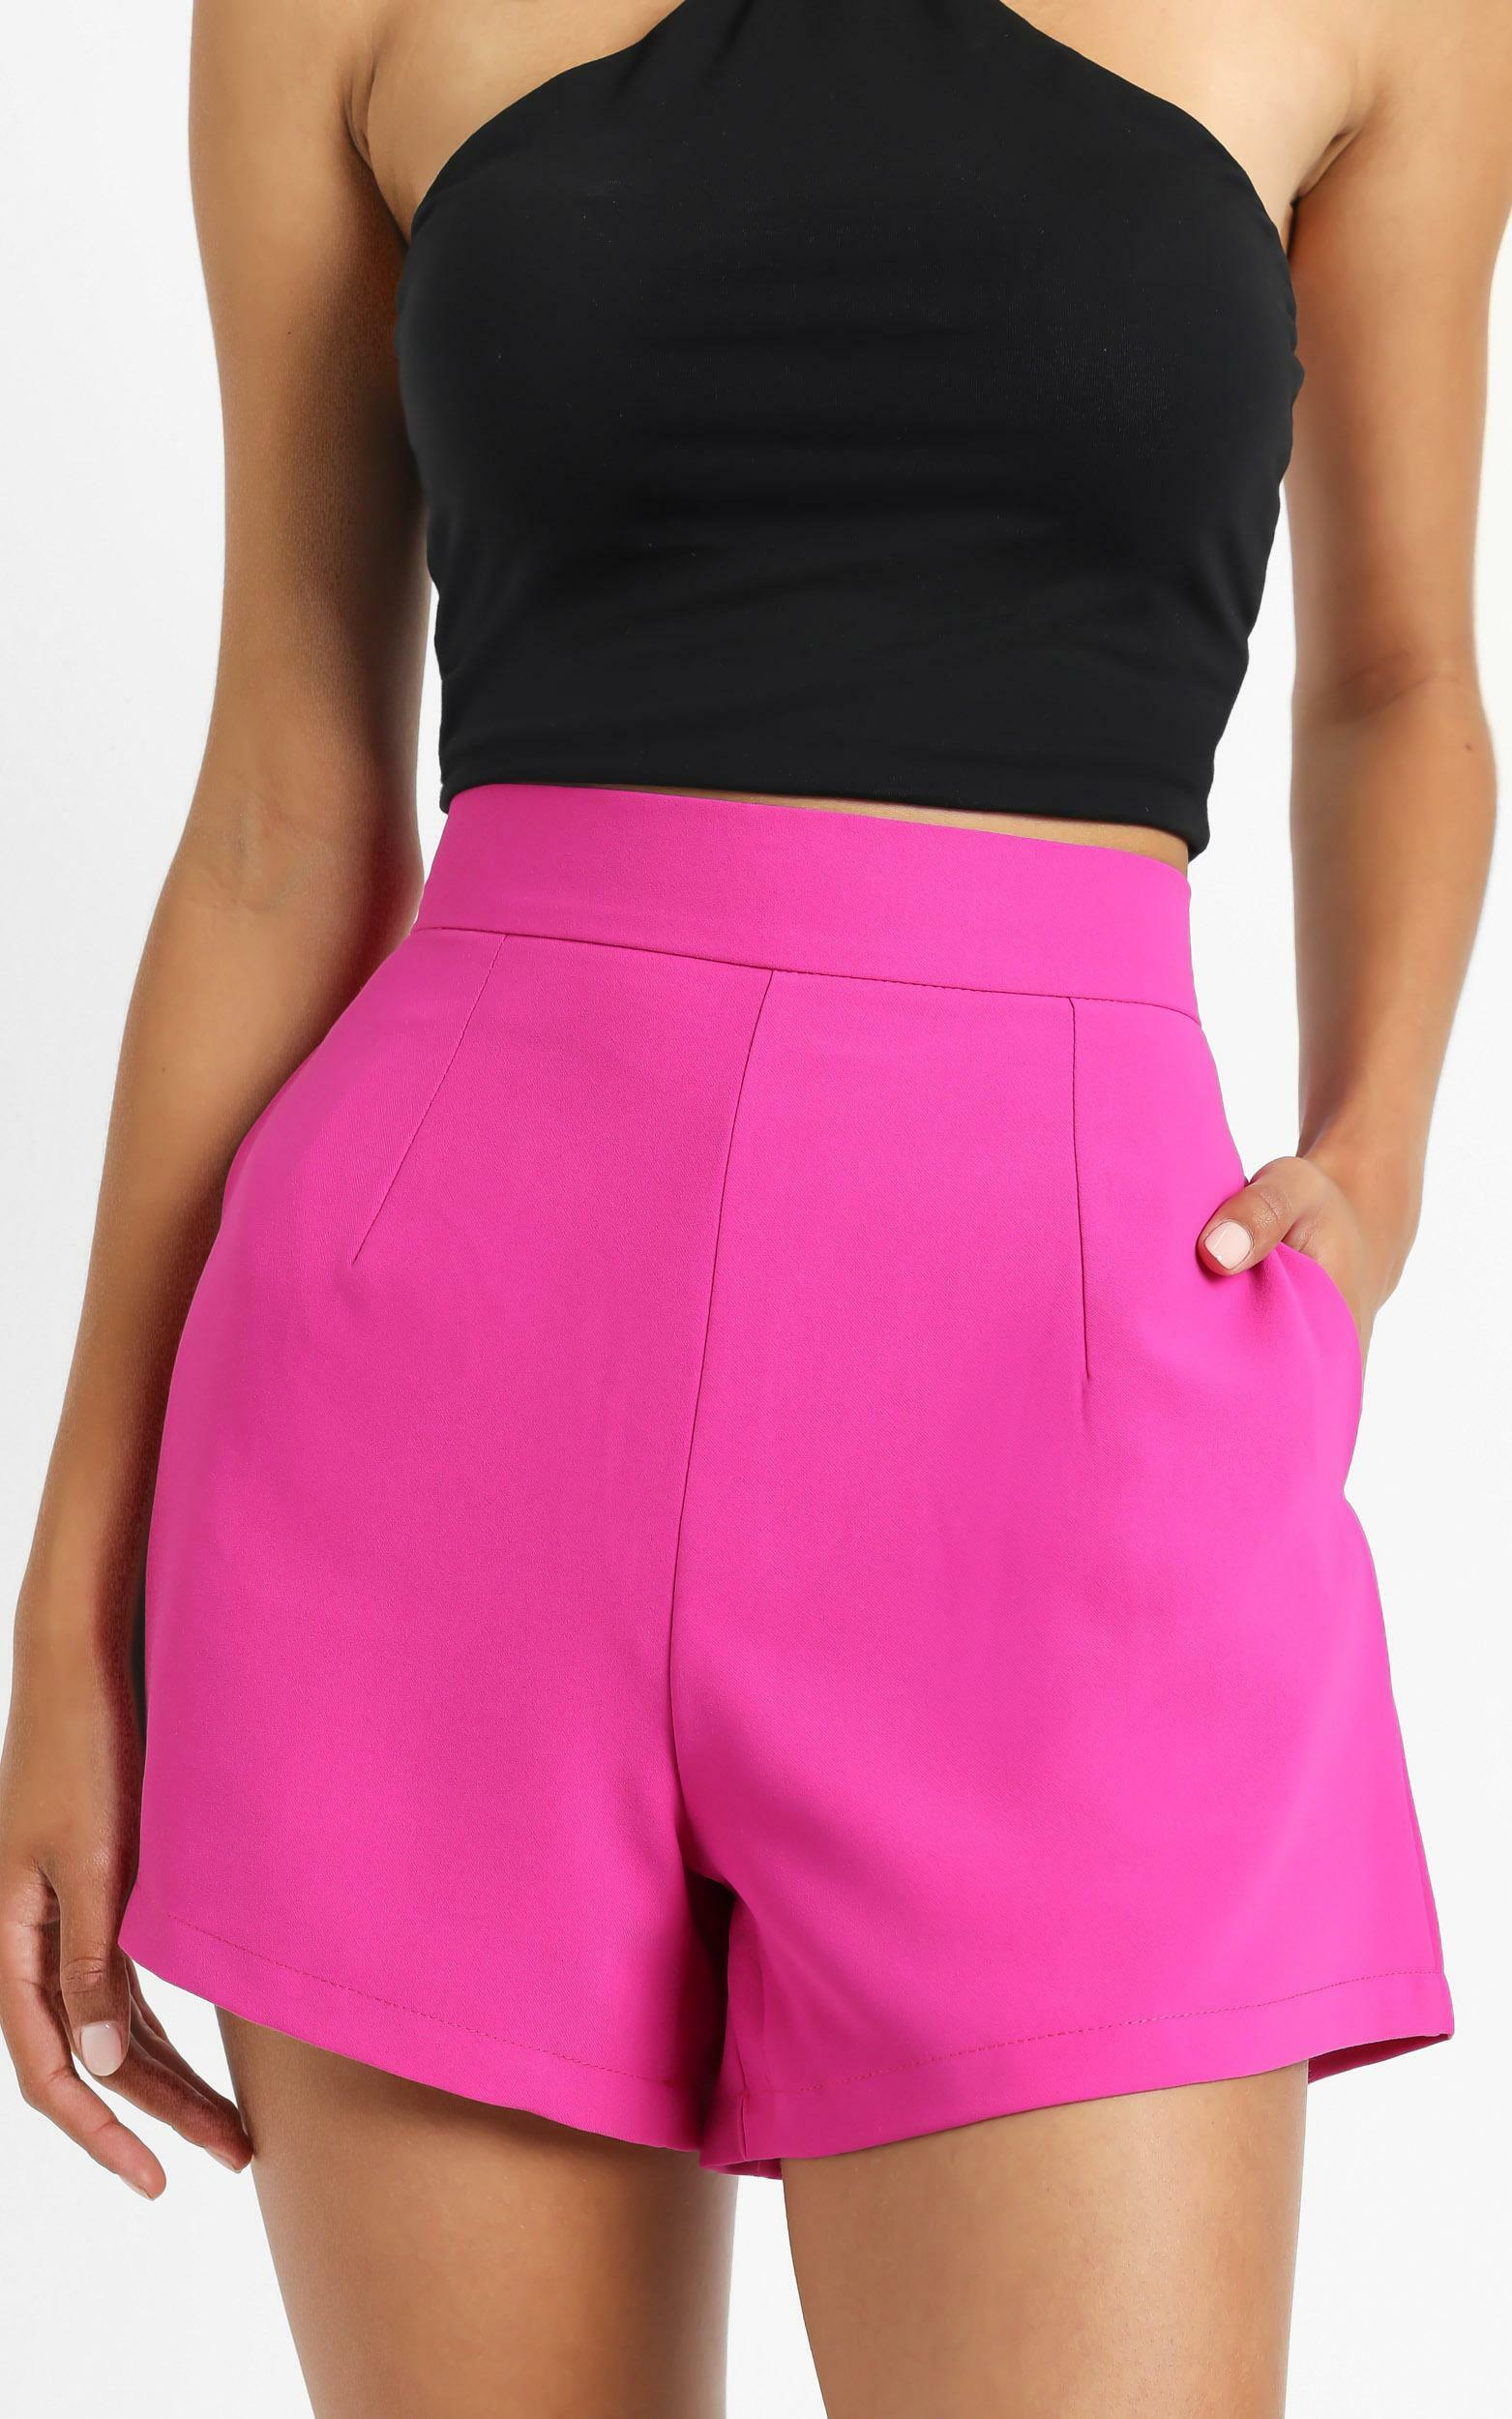 Along The Ride Shorts in Hot Pink - 06, PNK2, hi-res image number null